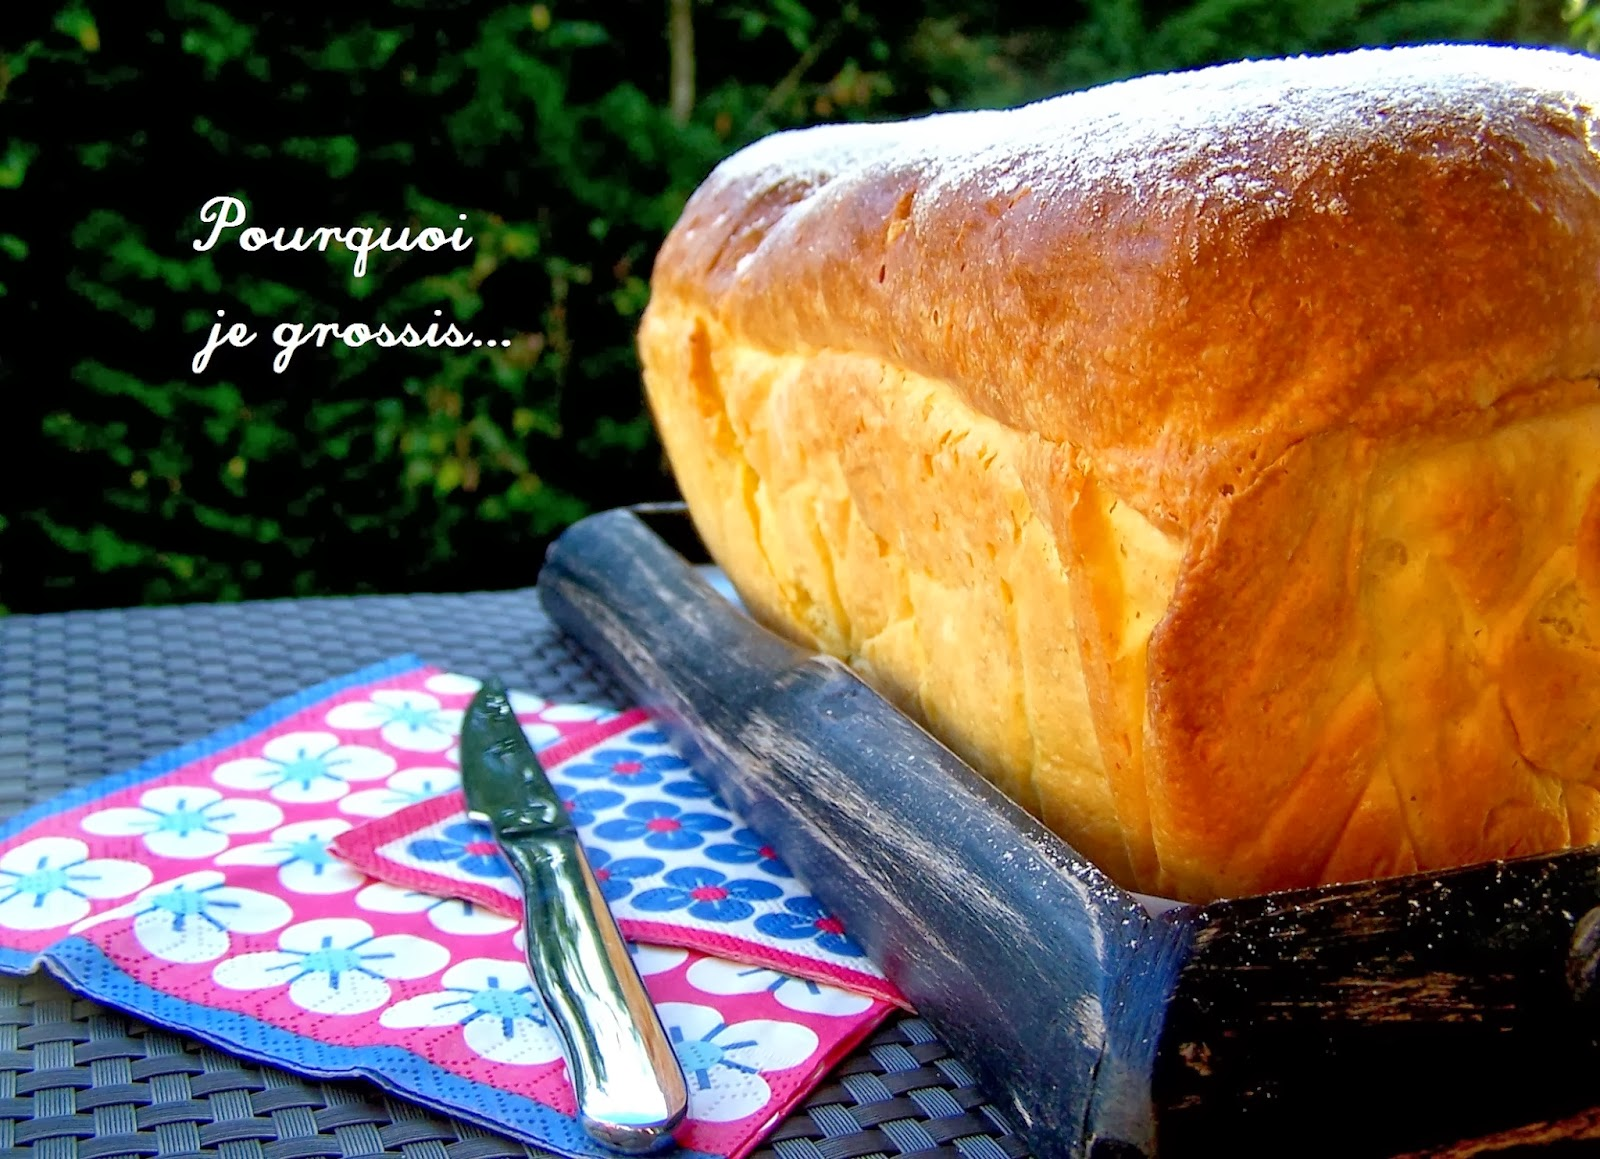 Pourquoi je grossis brioche butchy saveur for Pourquoi je grossis